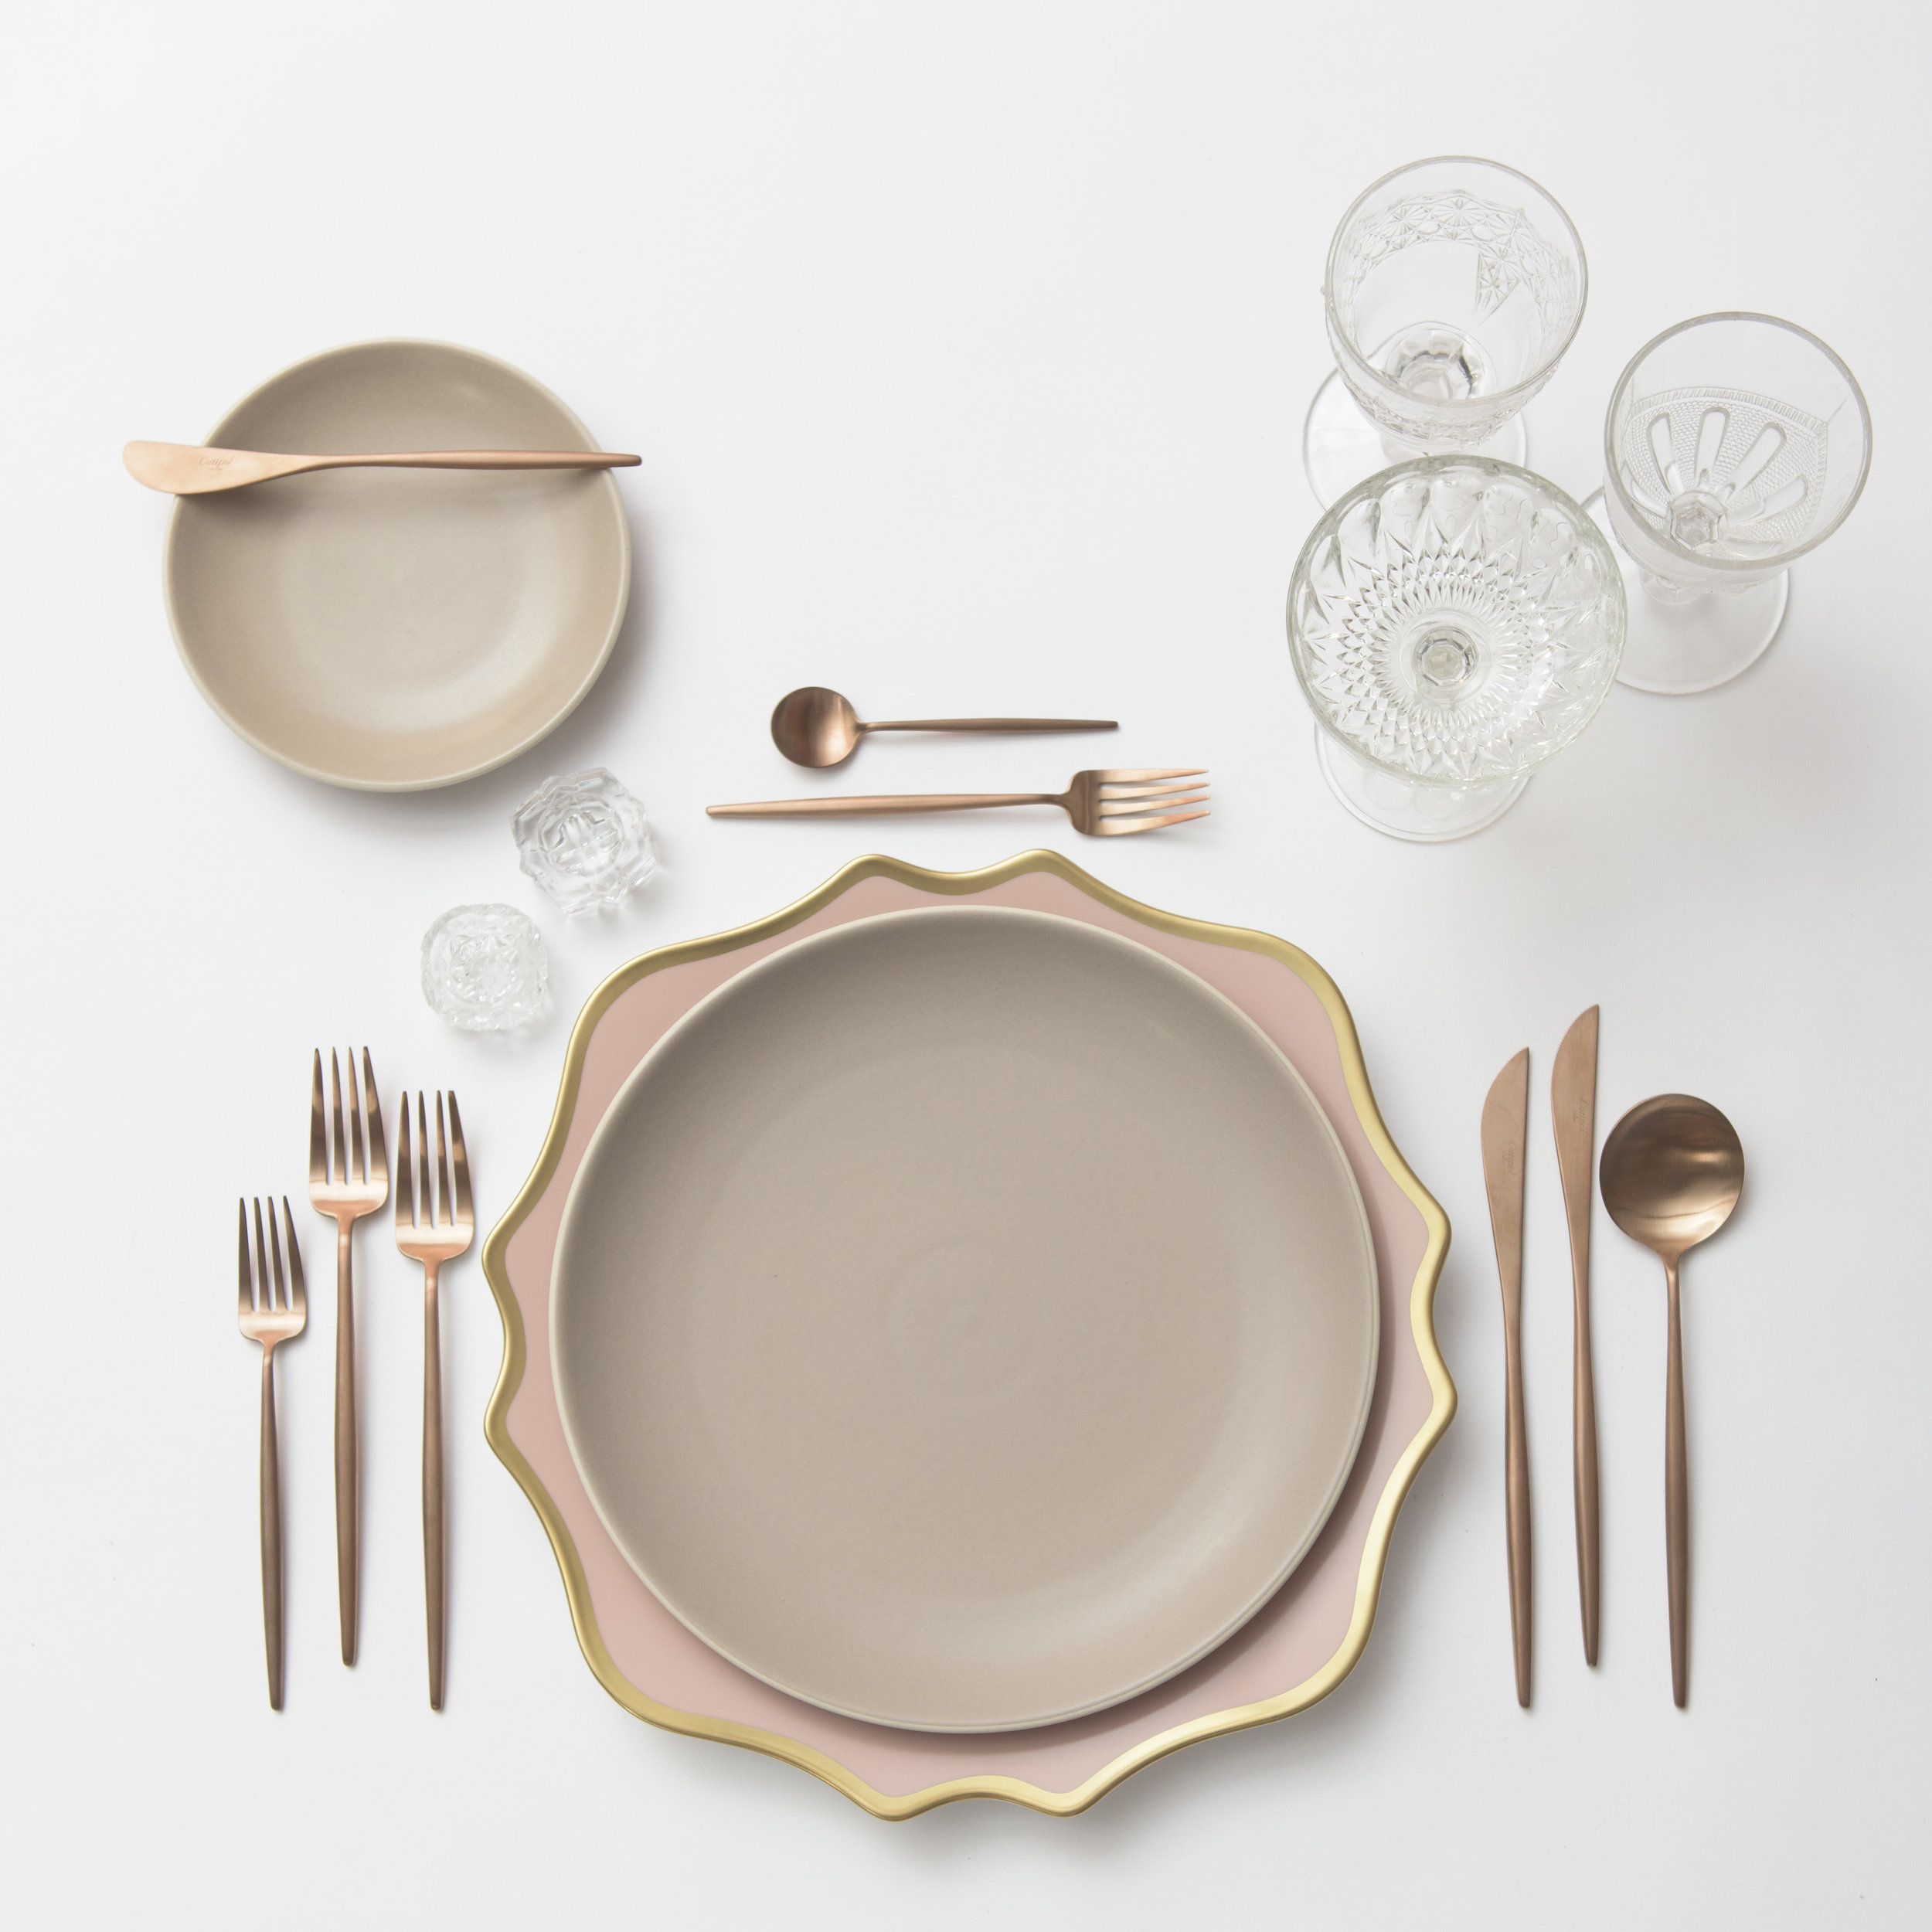 RENT: Anna Weatherley Chargers in Desert Rose/Gold + Heath Ceramics in French Grey + Moon Flatware in Brushed Rose Gold + Early American Pressed Glass Goblets + Vintage Champagne Coupes + Antique Crystal Salt Cellars  SHOP: Moon Flatware in Brushed Rose Gold